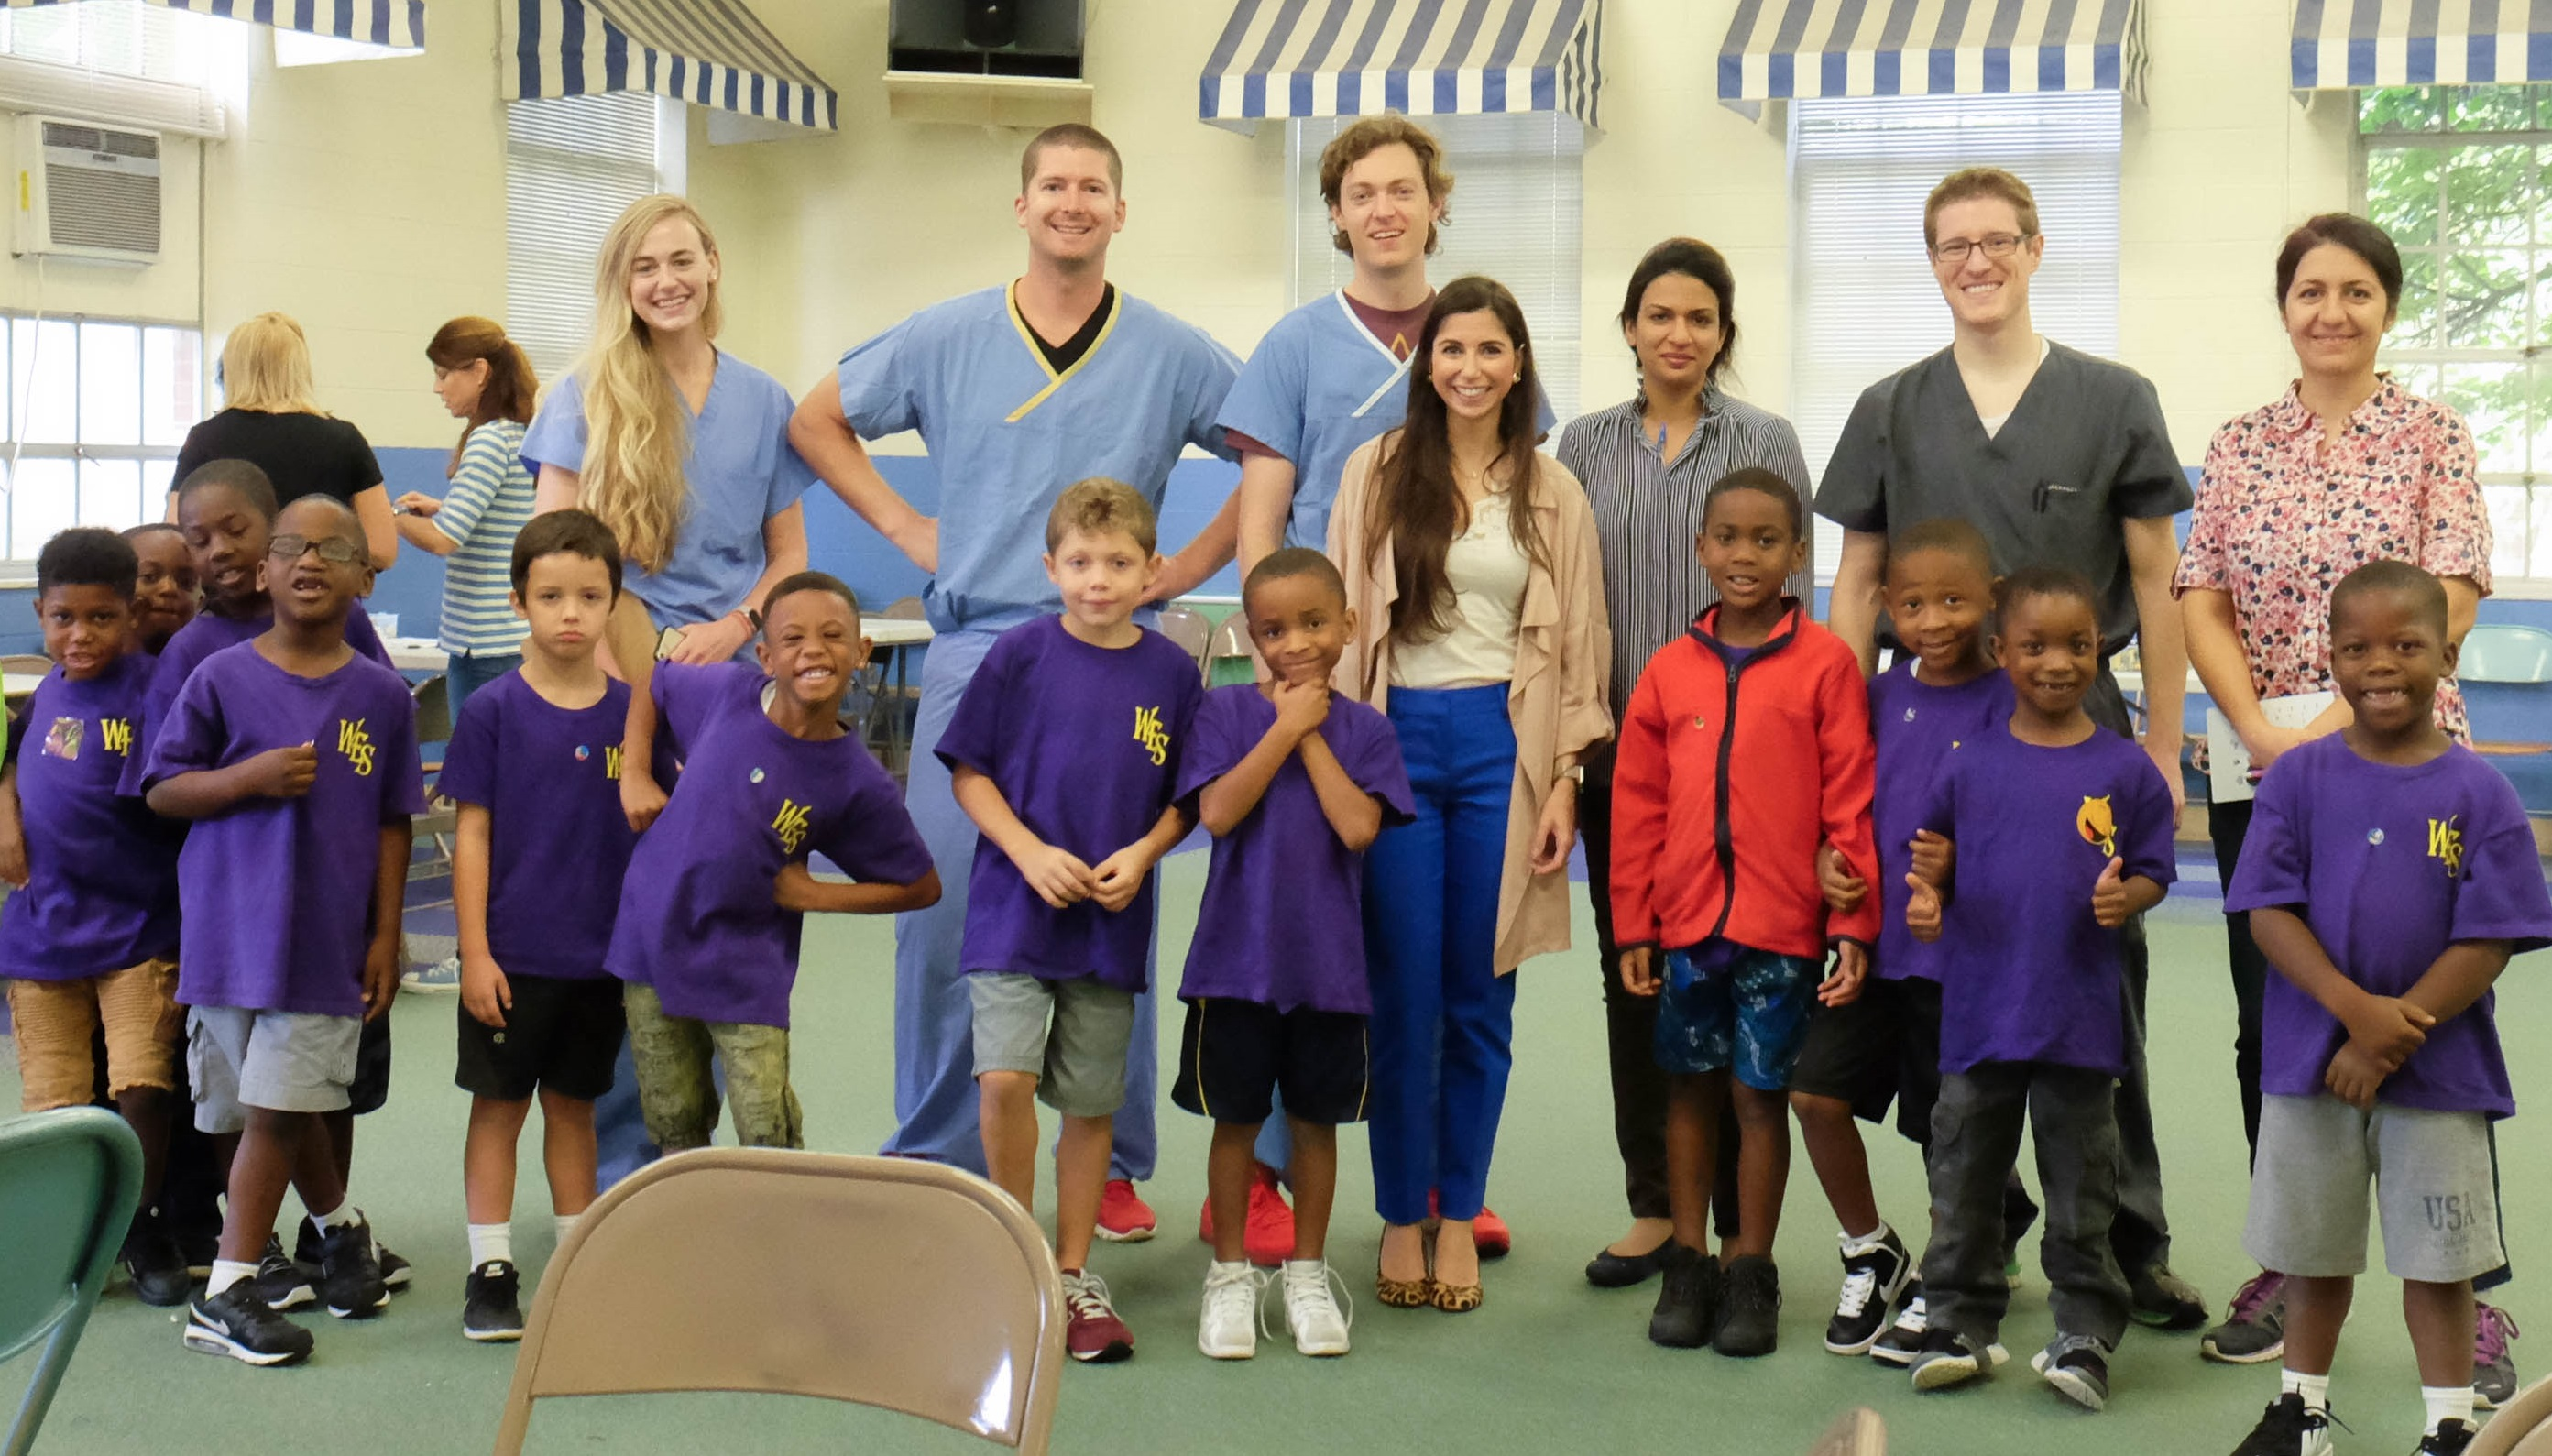 Lions Eye Center staff and students at West End School